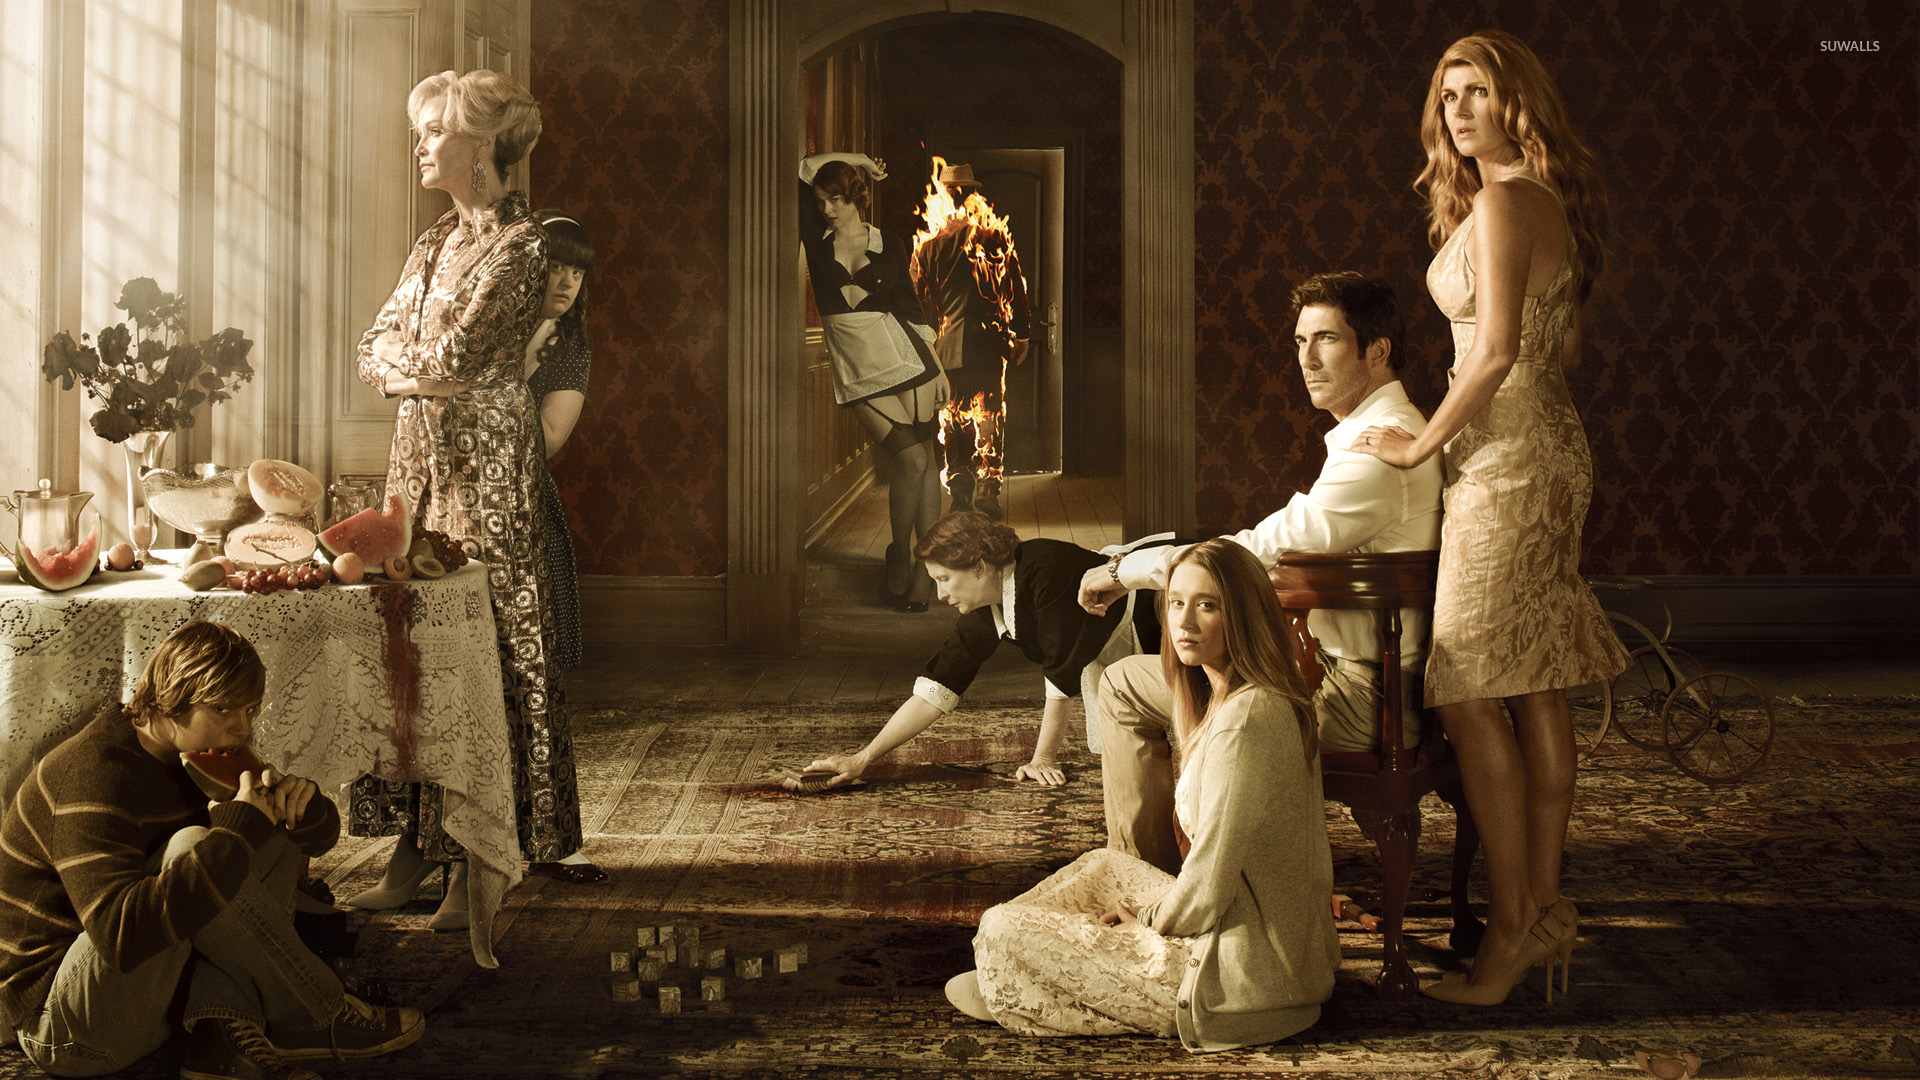 American Horror Story 6 Wallpaper Tv Show Wallpapers 27880